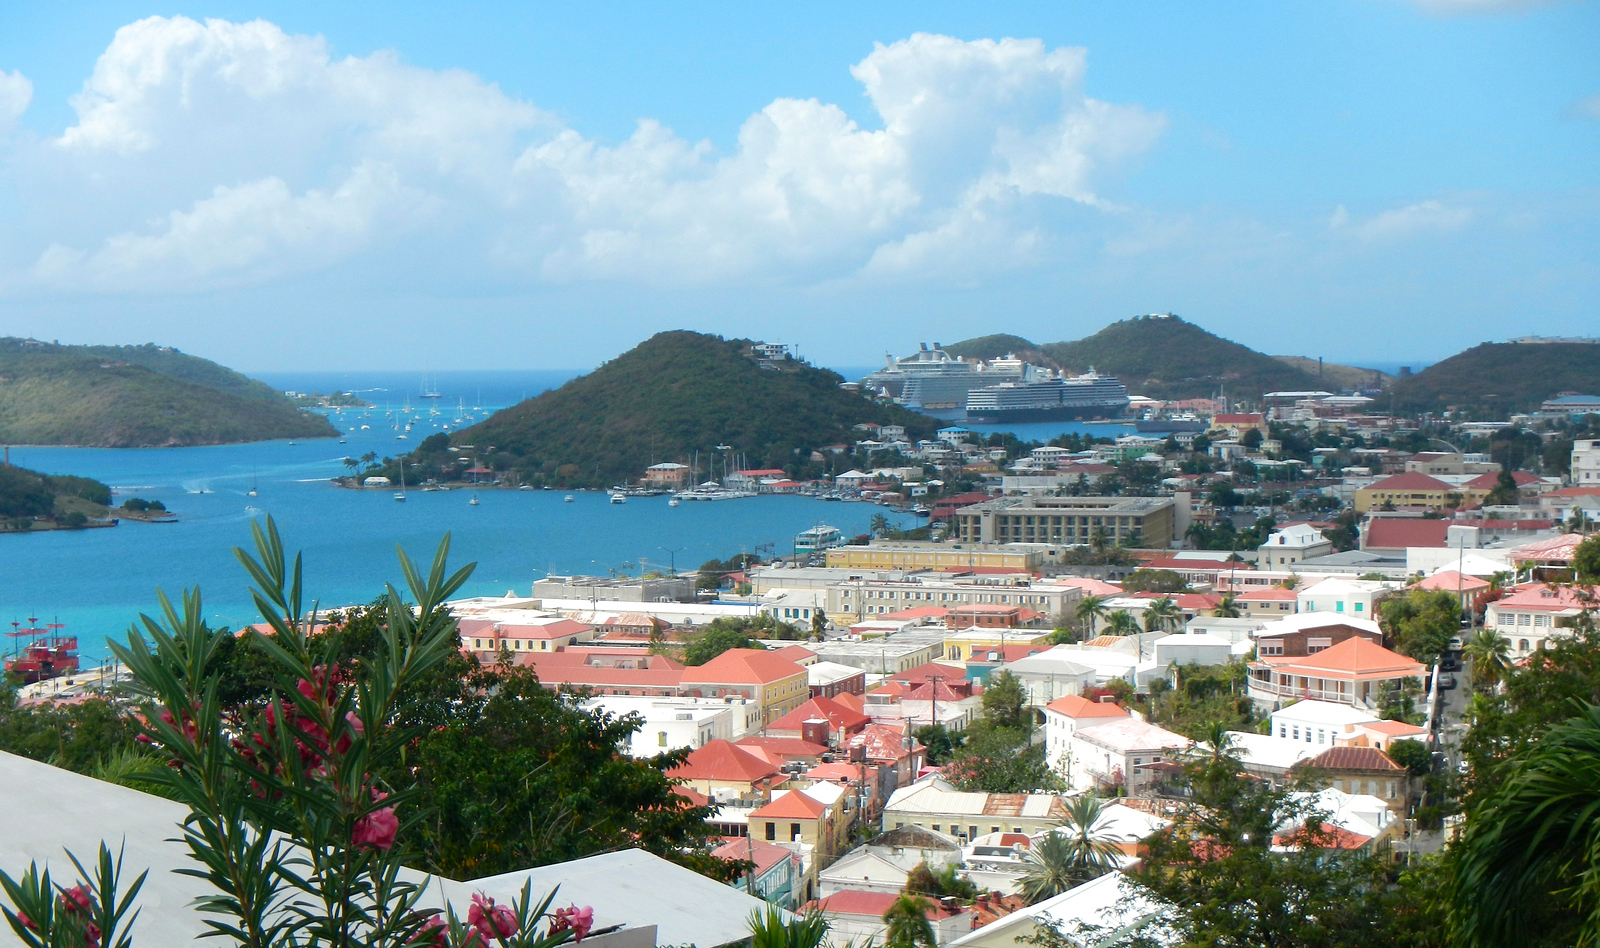 Beautiful view of Charlotte Amalie and Crown Bay from Government Hill.